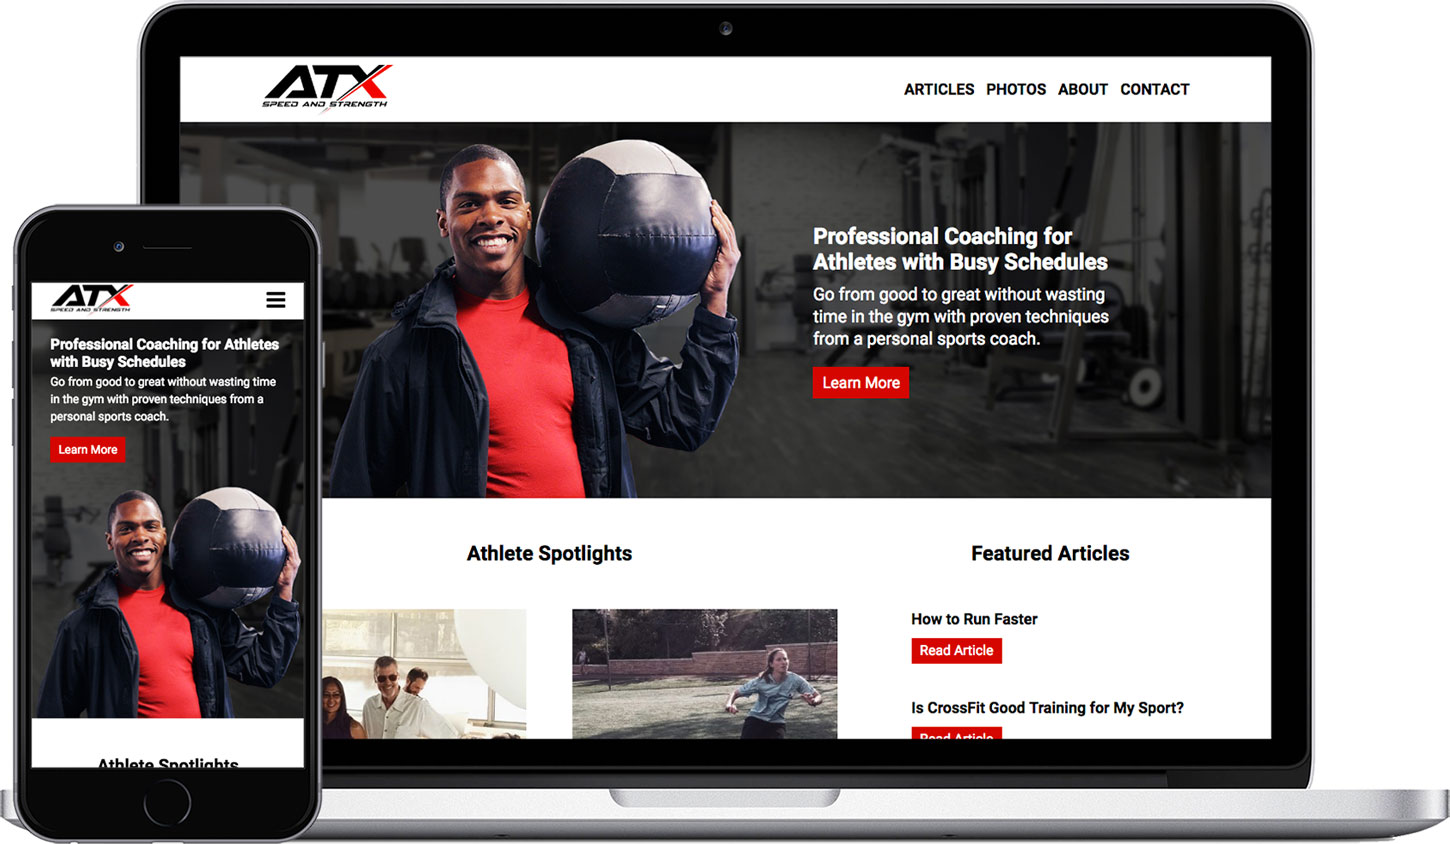 Website Sample 1: ATX Speed and Strength